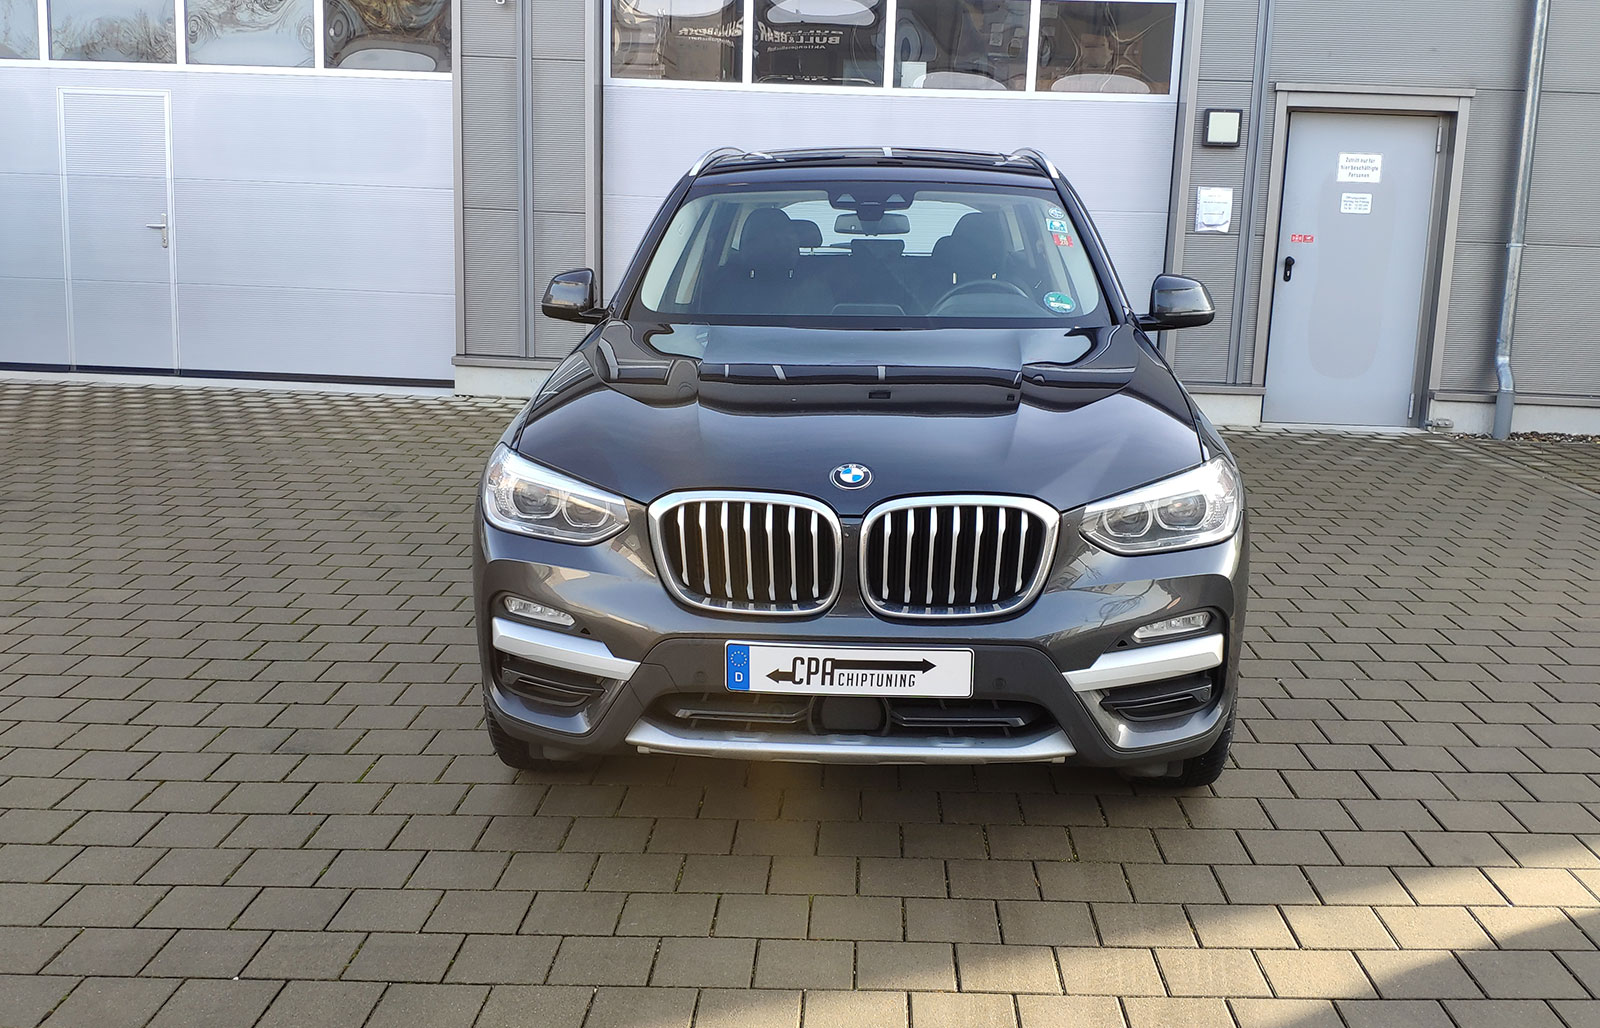 The BMW X3 (G01) xDrive20d in test